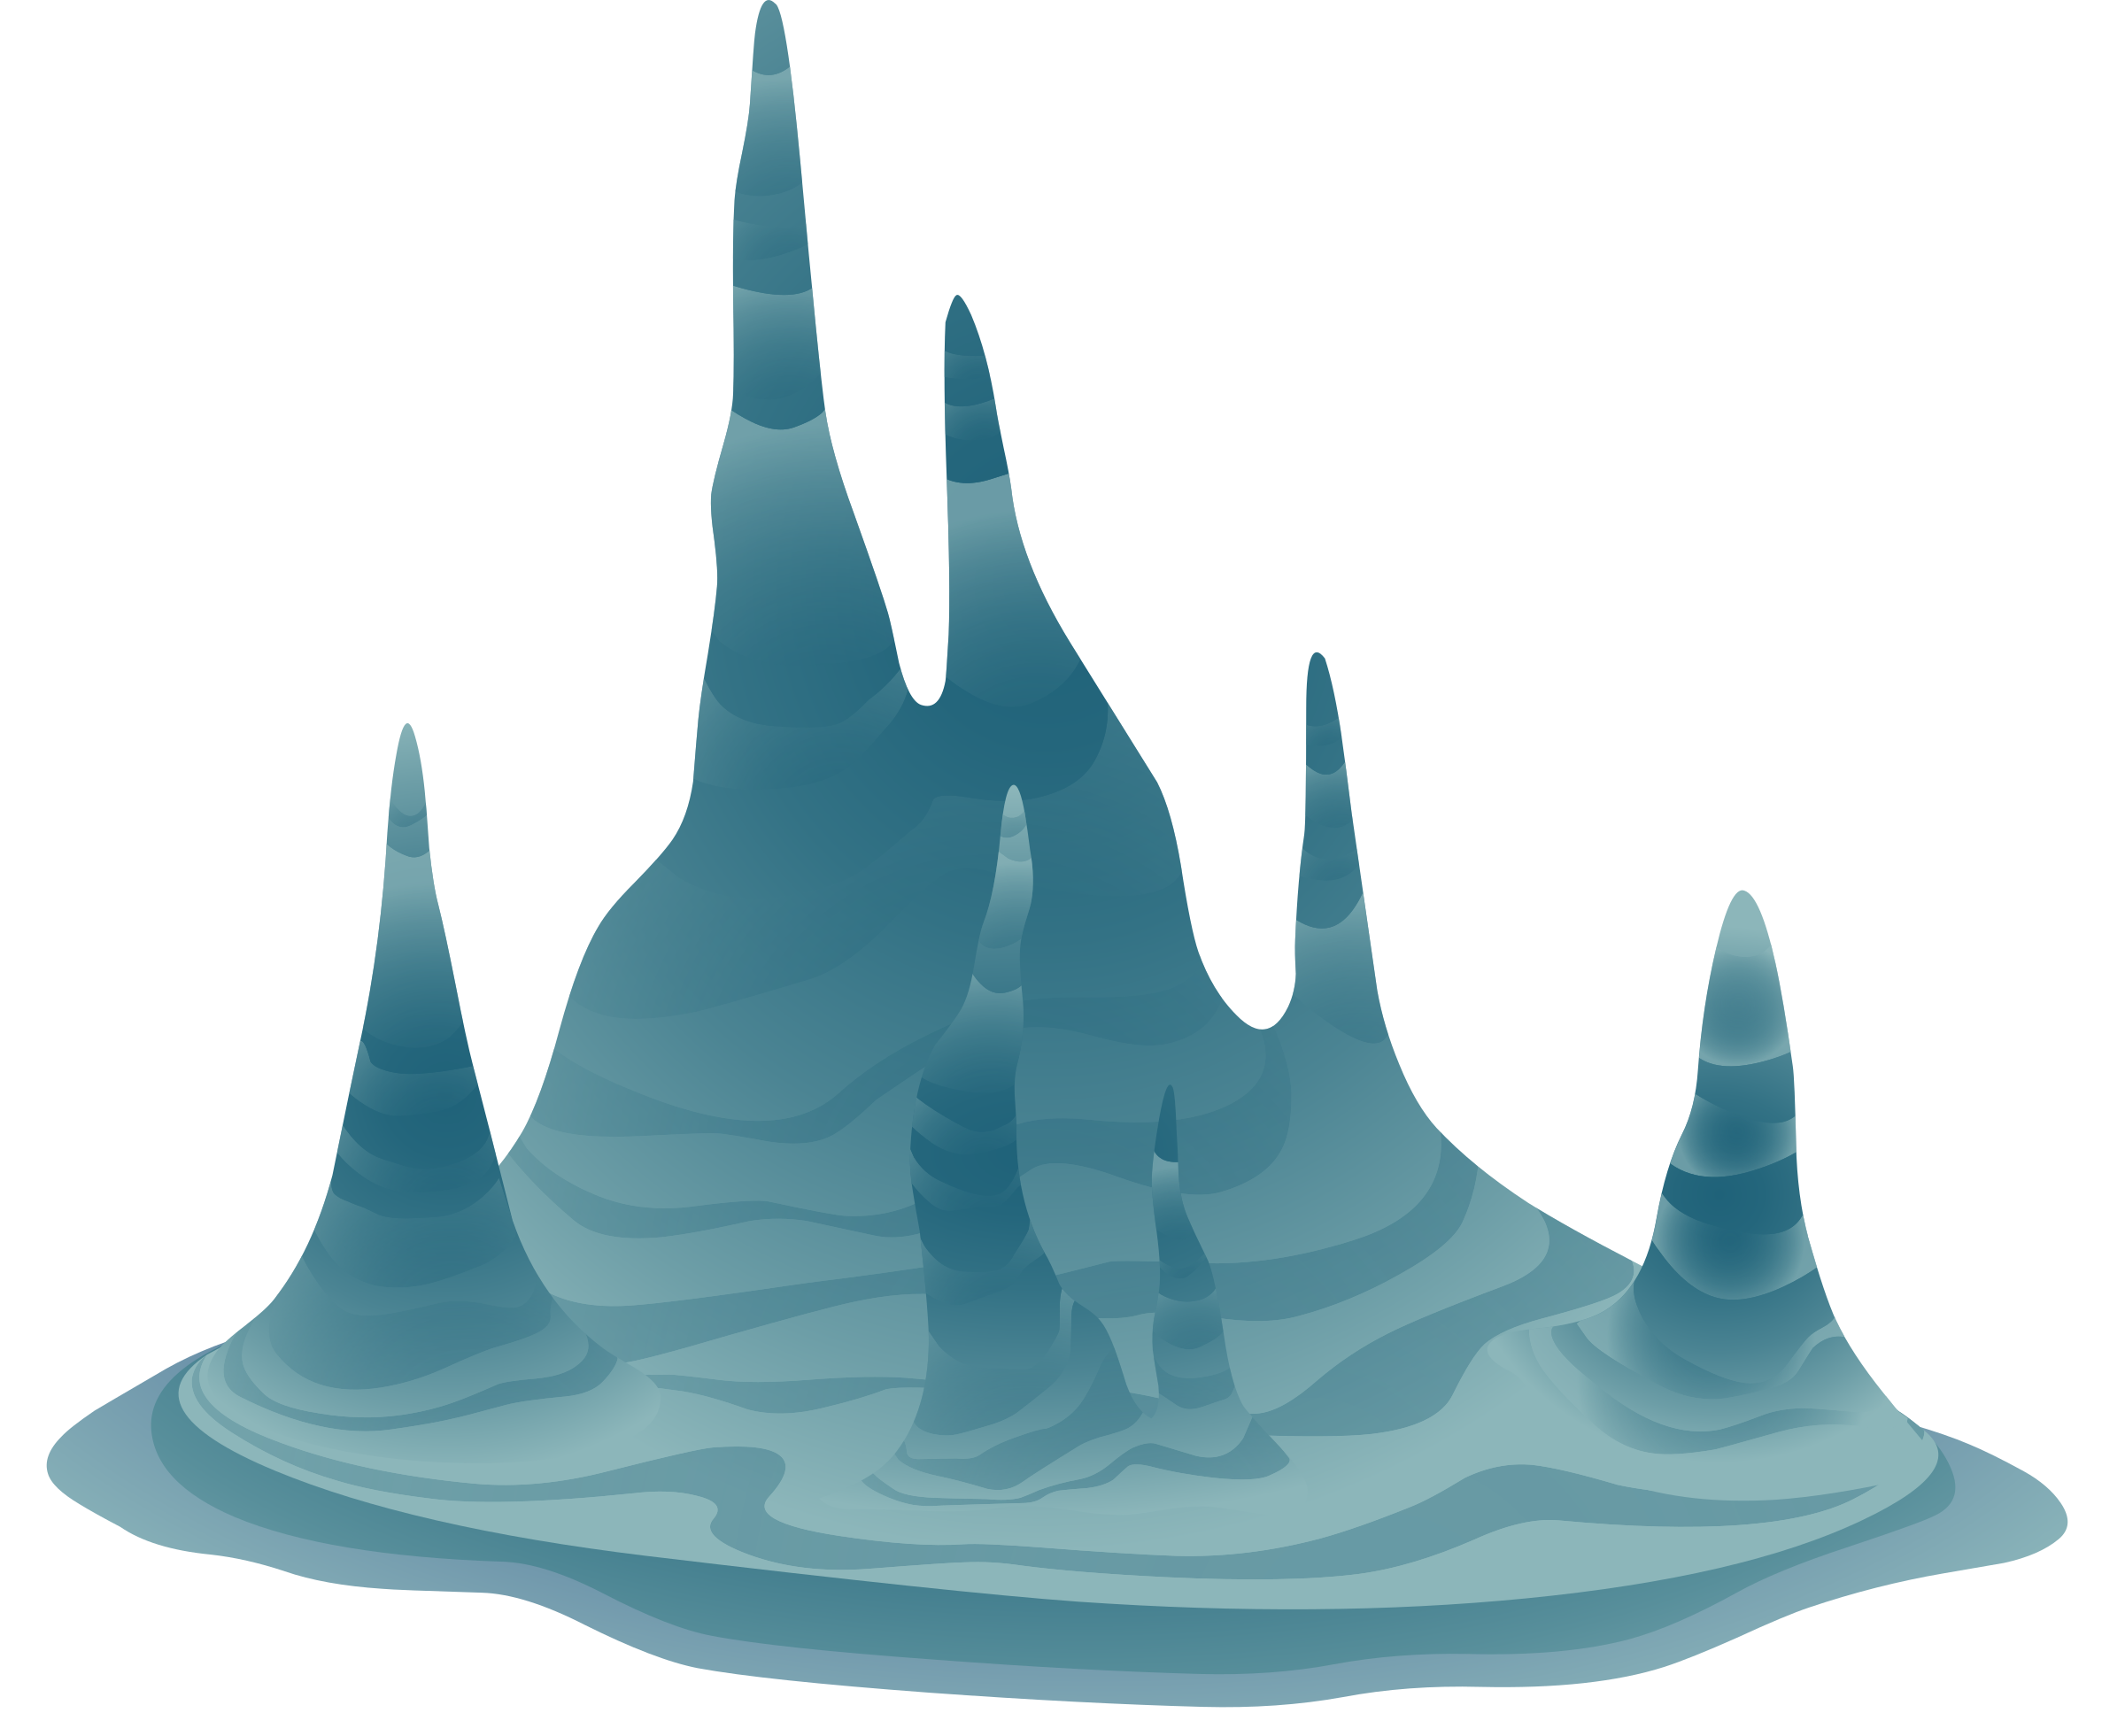 Cave clipart icicle Icicle 2 Clipart cave ilmenskie